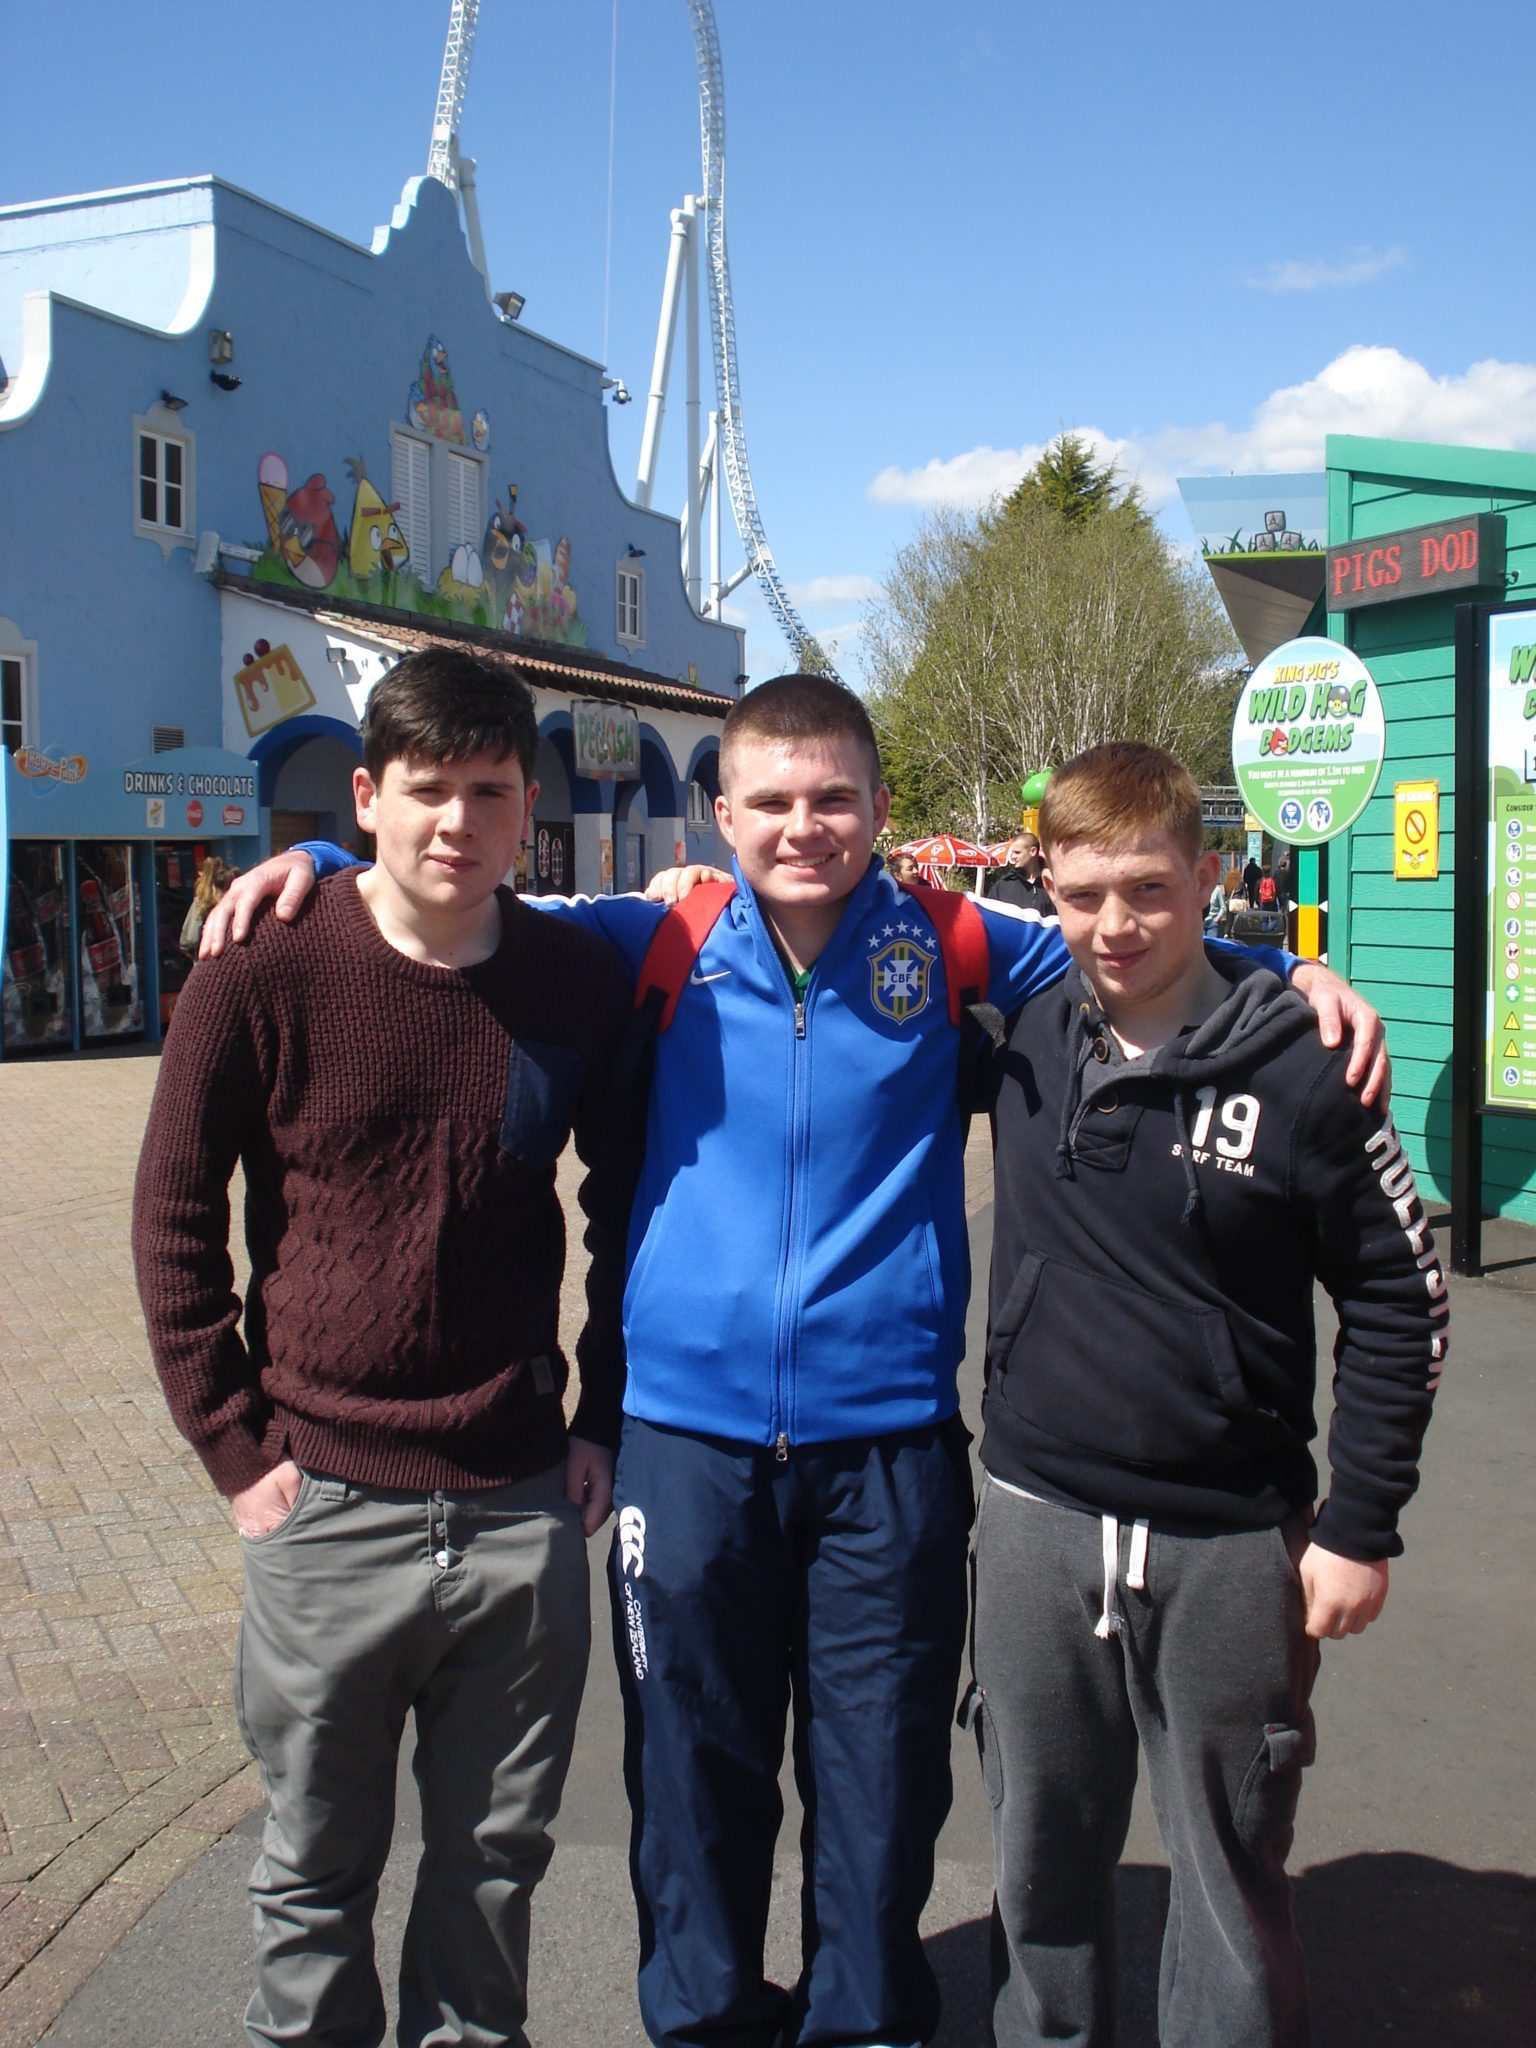 John Scanlon, Robert Meehan and Conor Leahy from Desmond College Limerick on Tour in London